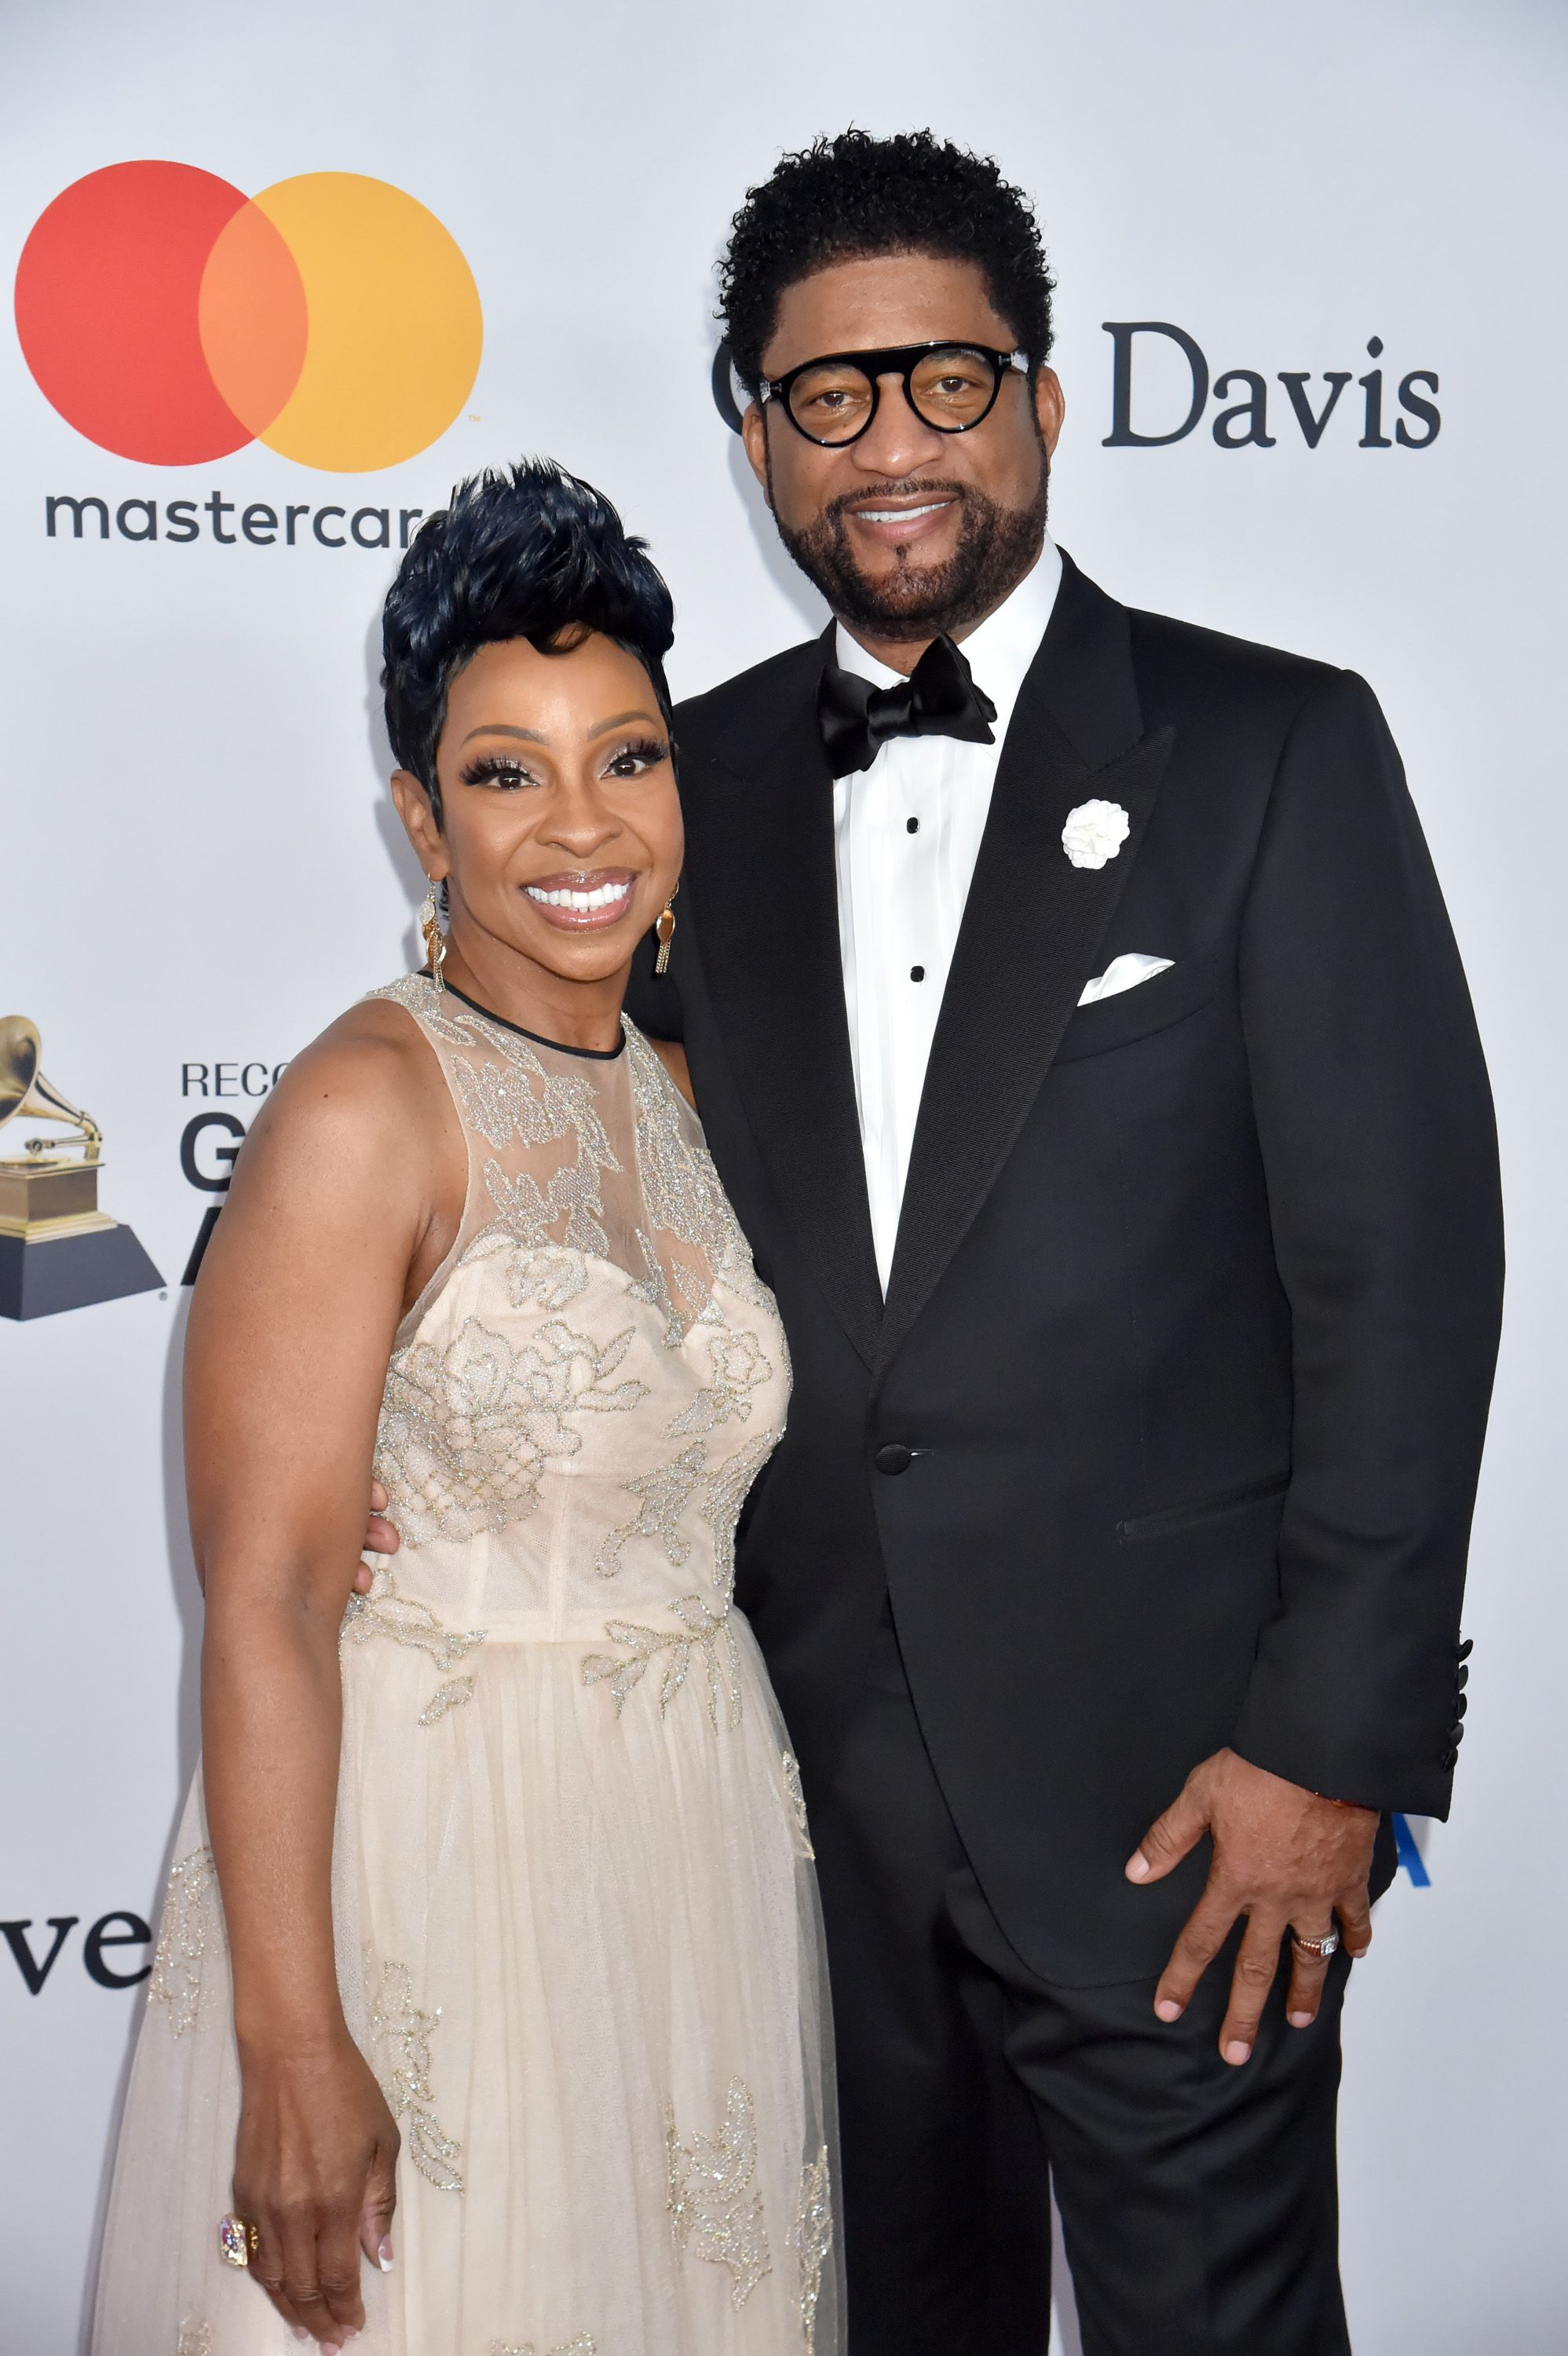 Gladys Knight and William McDowell at the Clive Davis and Recording Academy Pre-GRAMMY Gala and GRAMMY Salute on January 27, 2018 in New York City. | Source: Getty Images